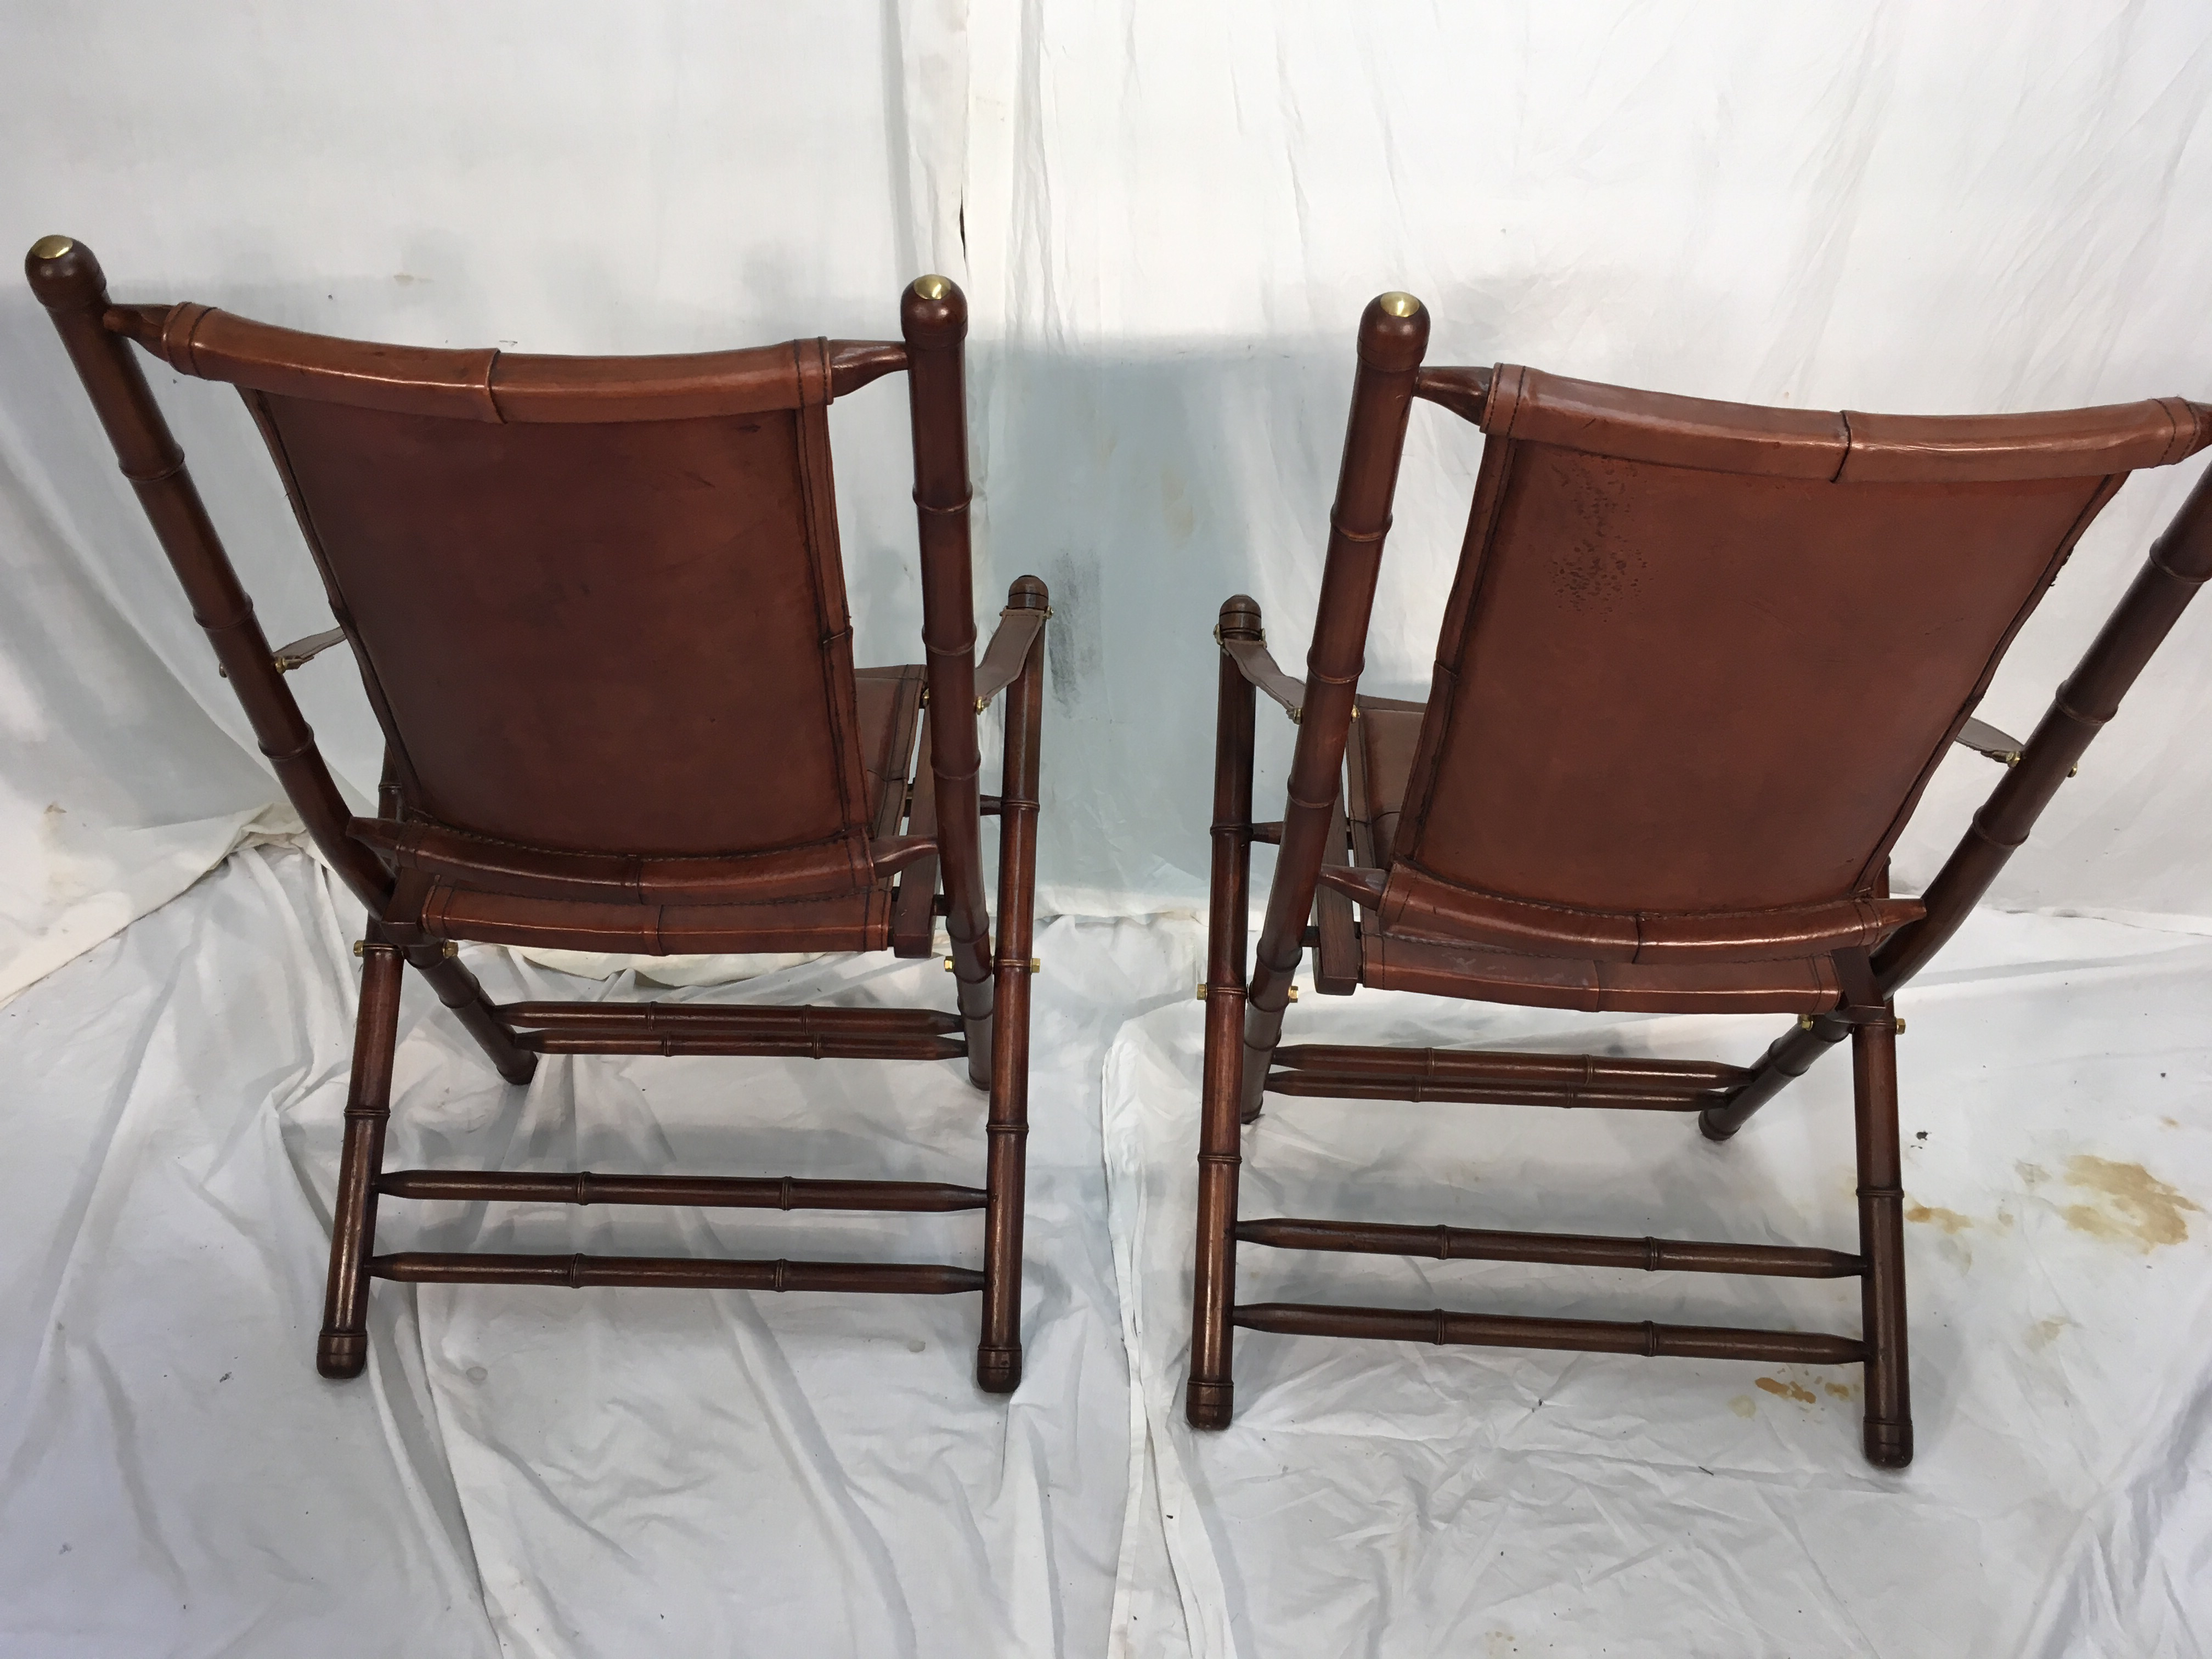 Leather U0026 Mahogany Campaign Chairs   A Pair   Image 6 ...